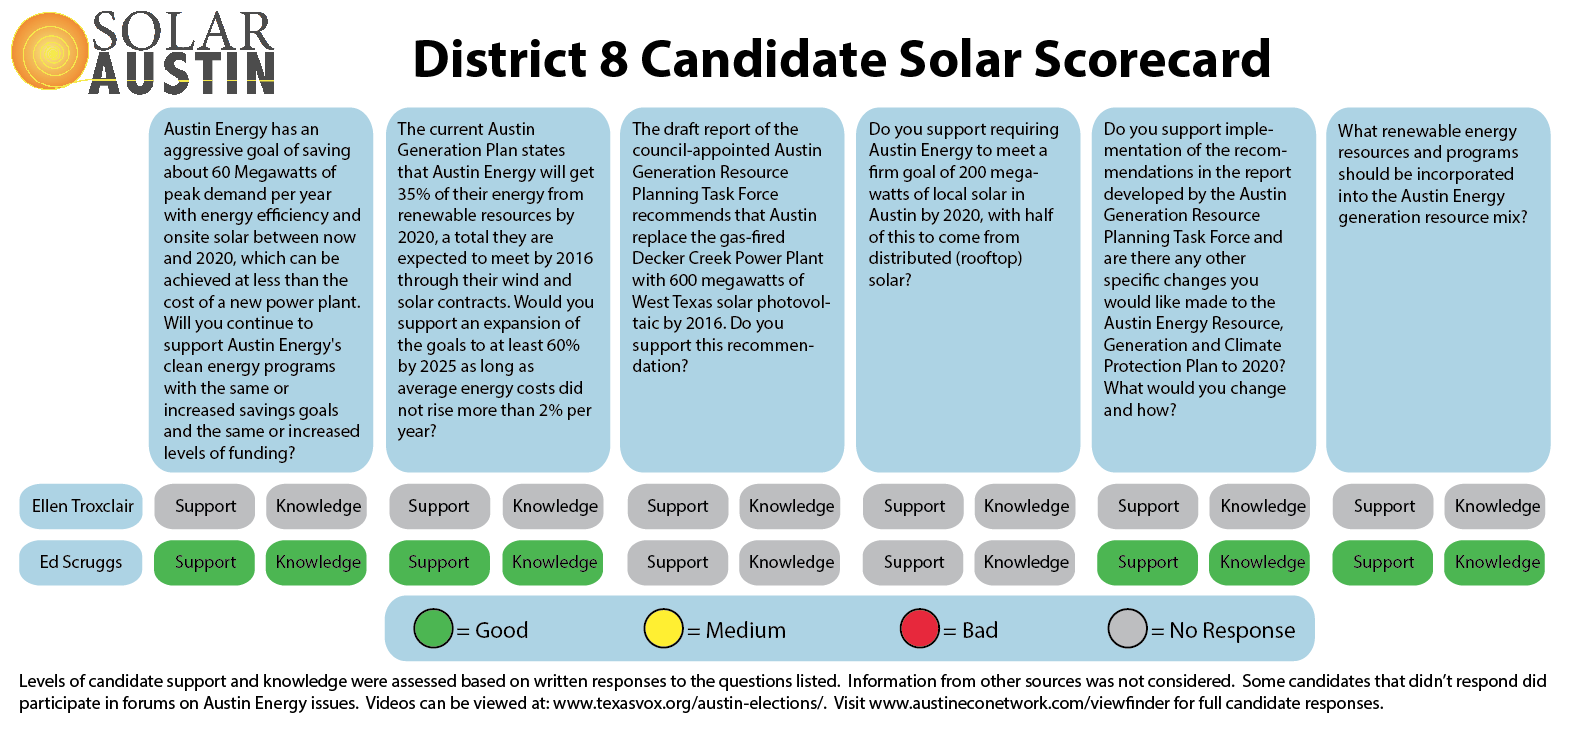 2014 Solar Austin Council District 8 Candidate Solar Scorecard - Runoffs